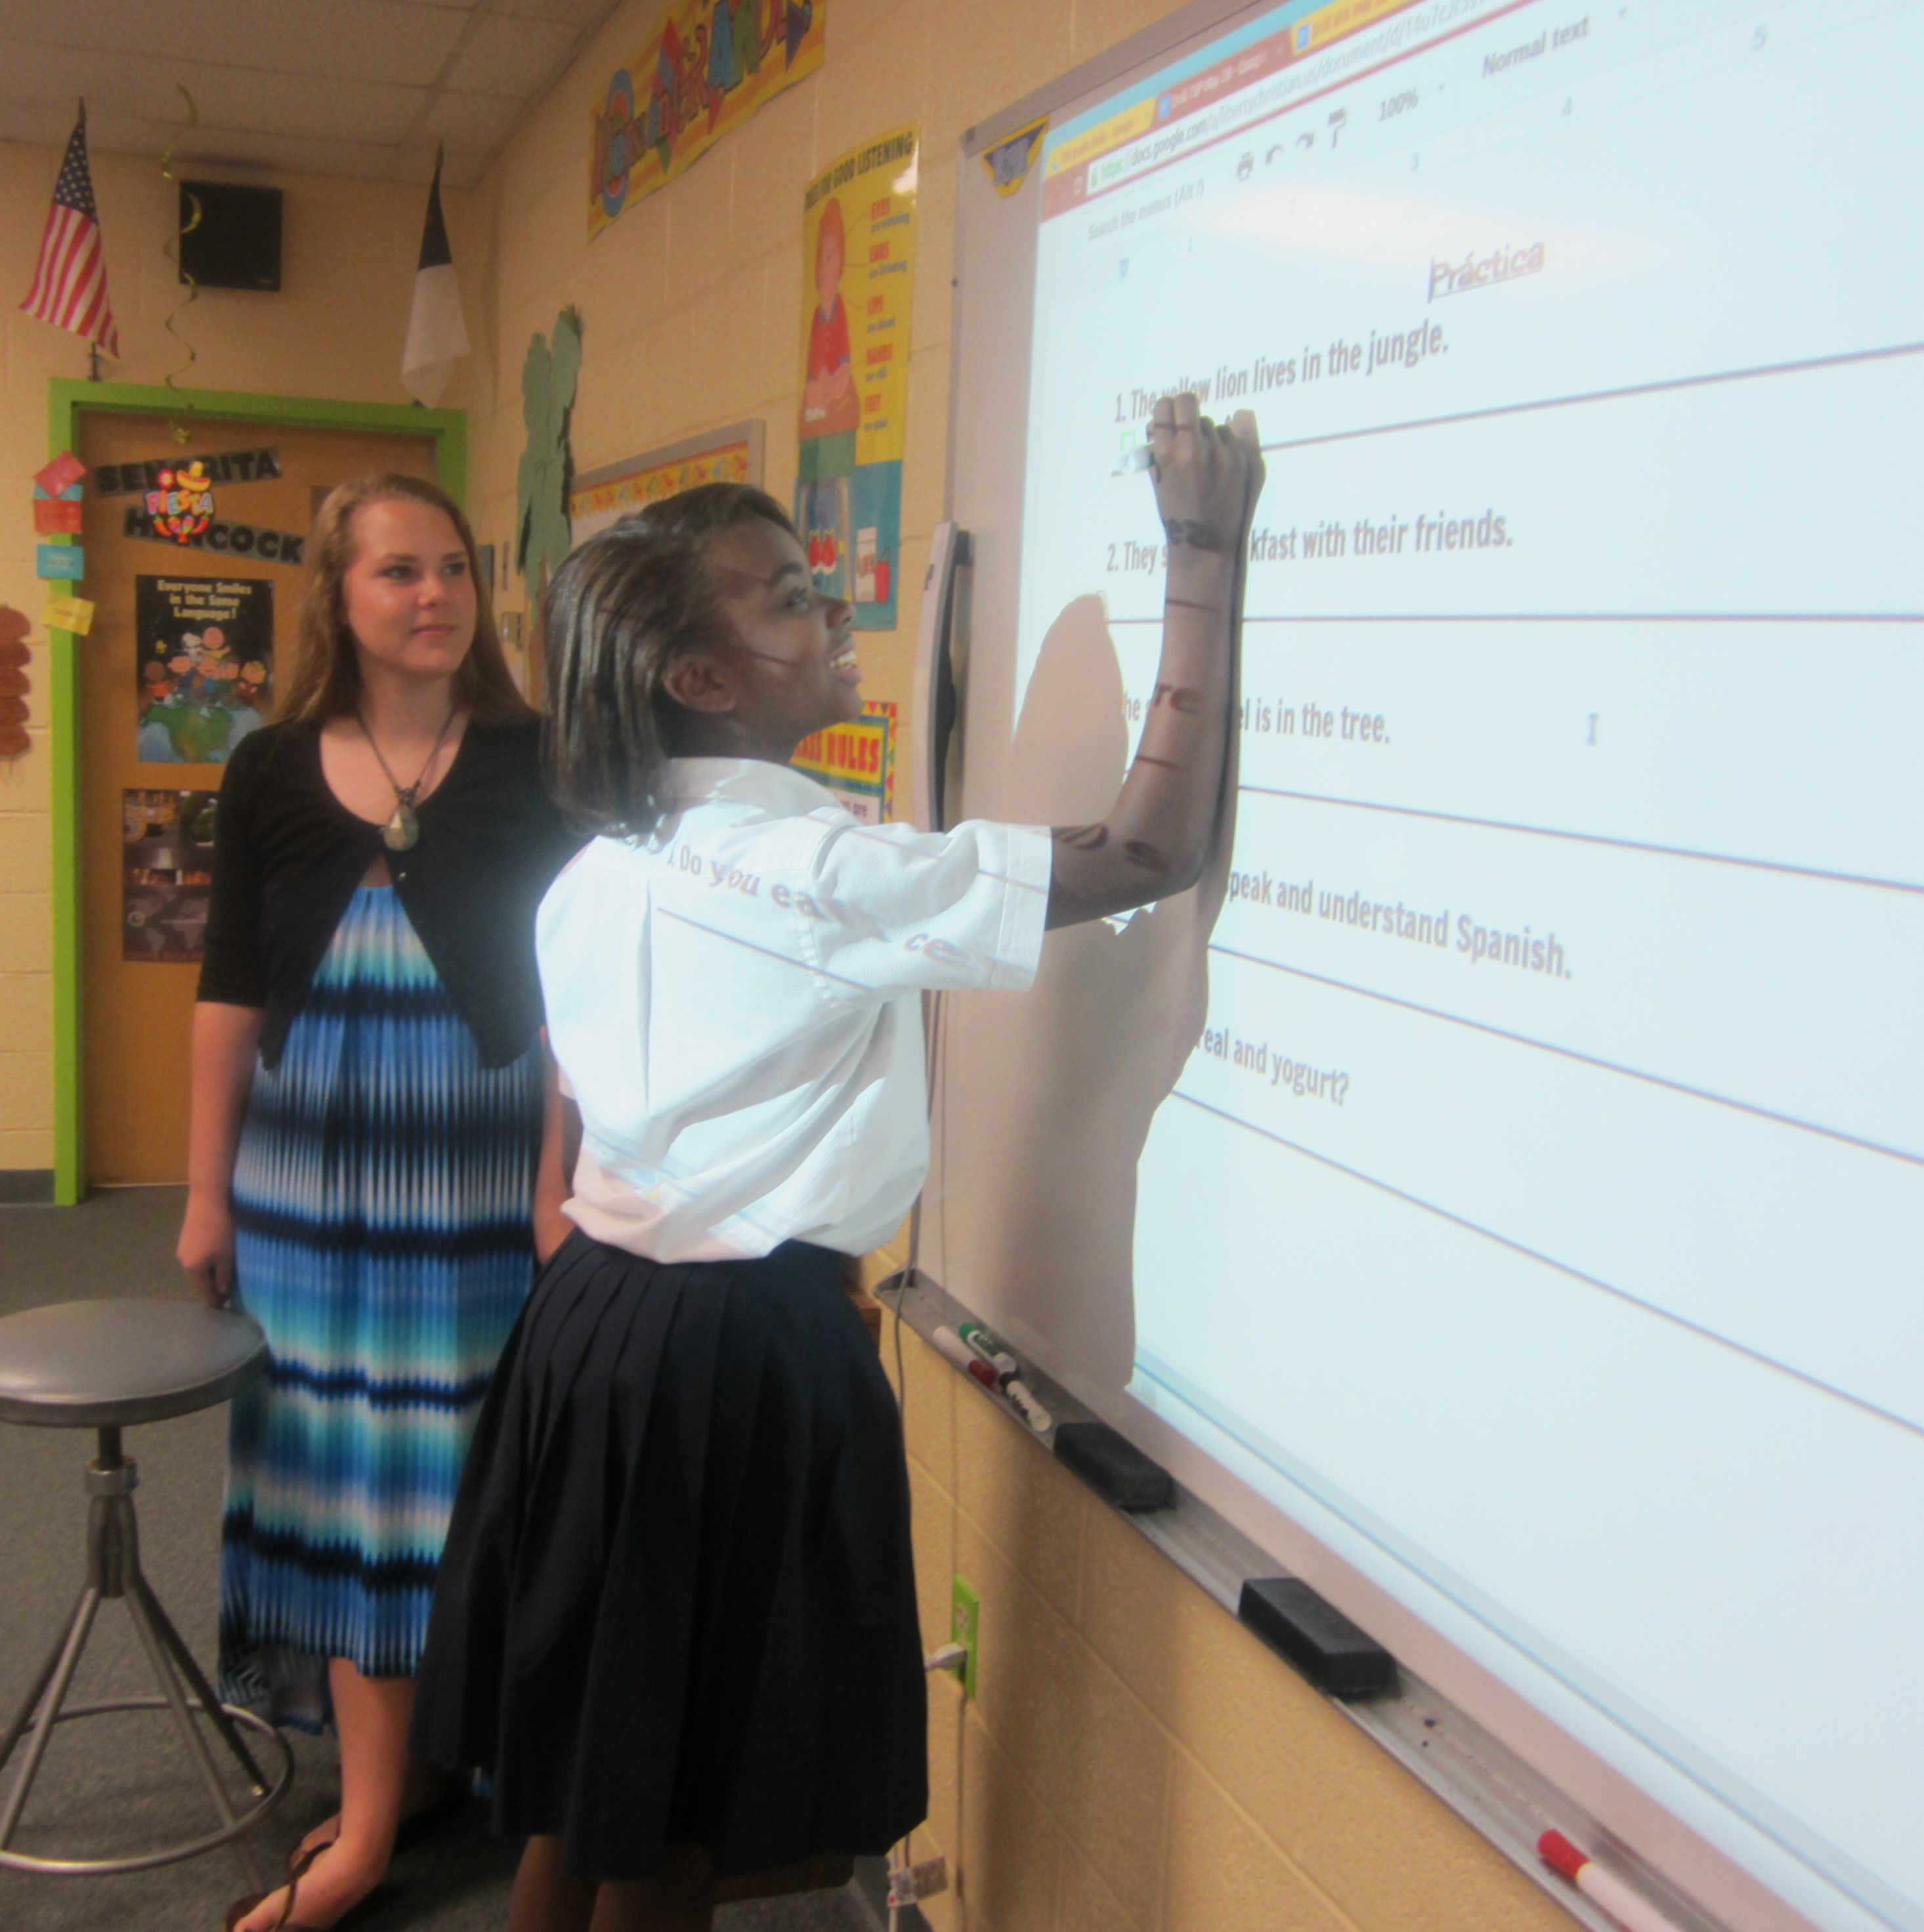 student and teacher at whiteboard